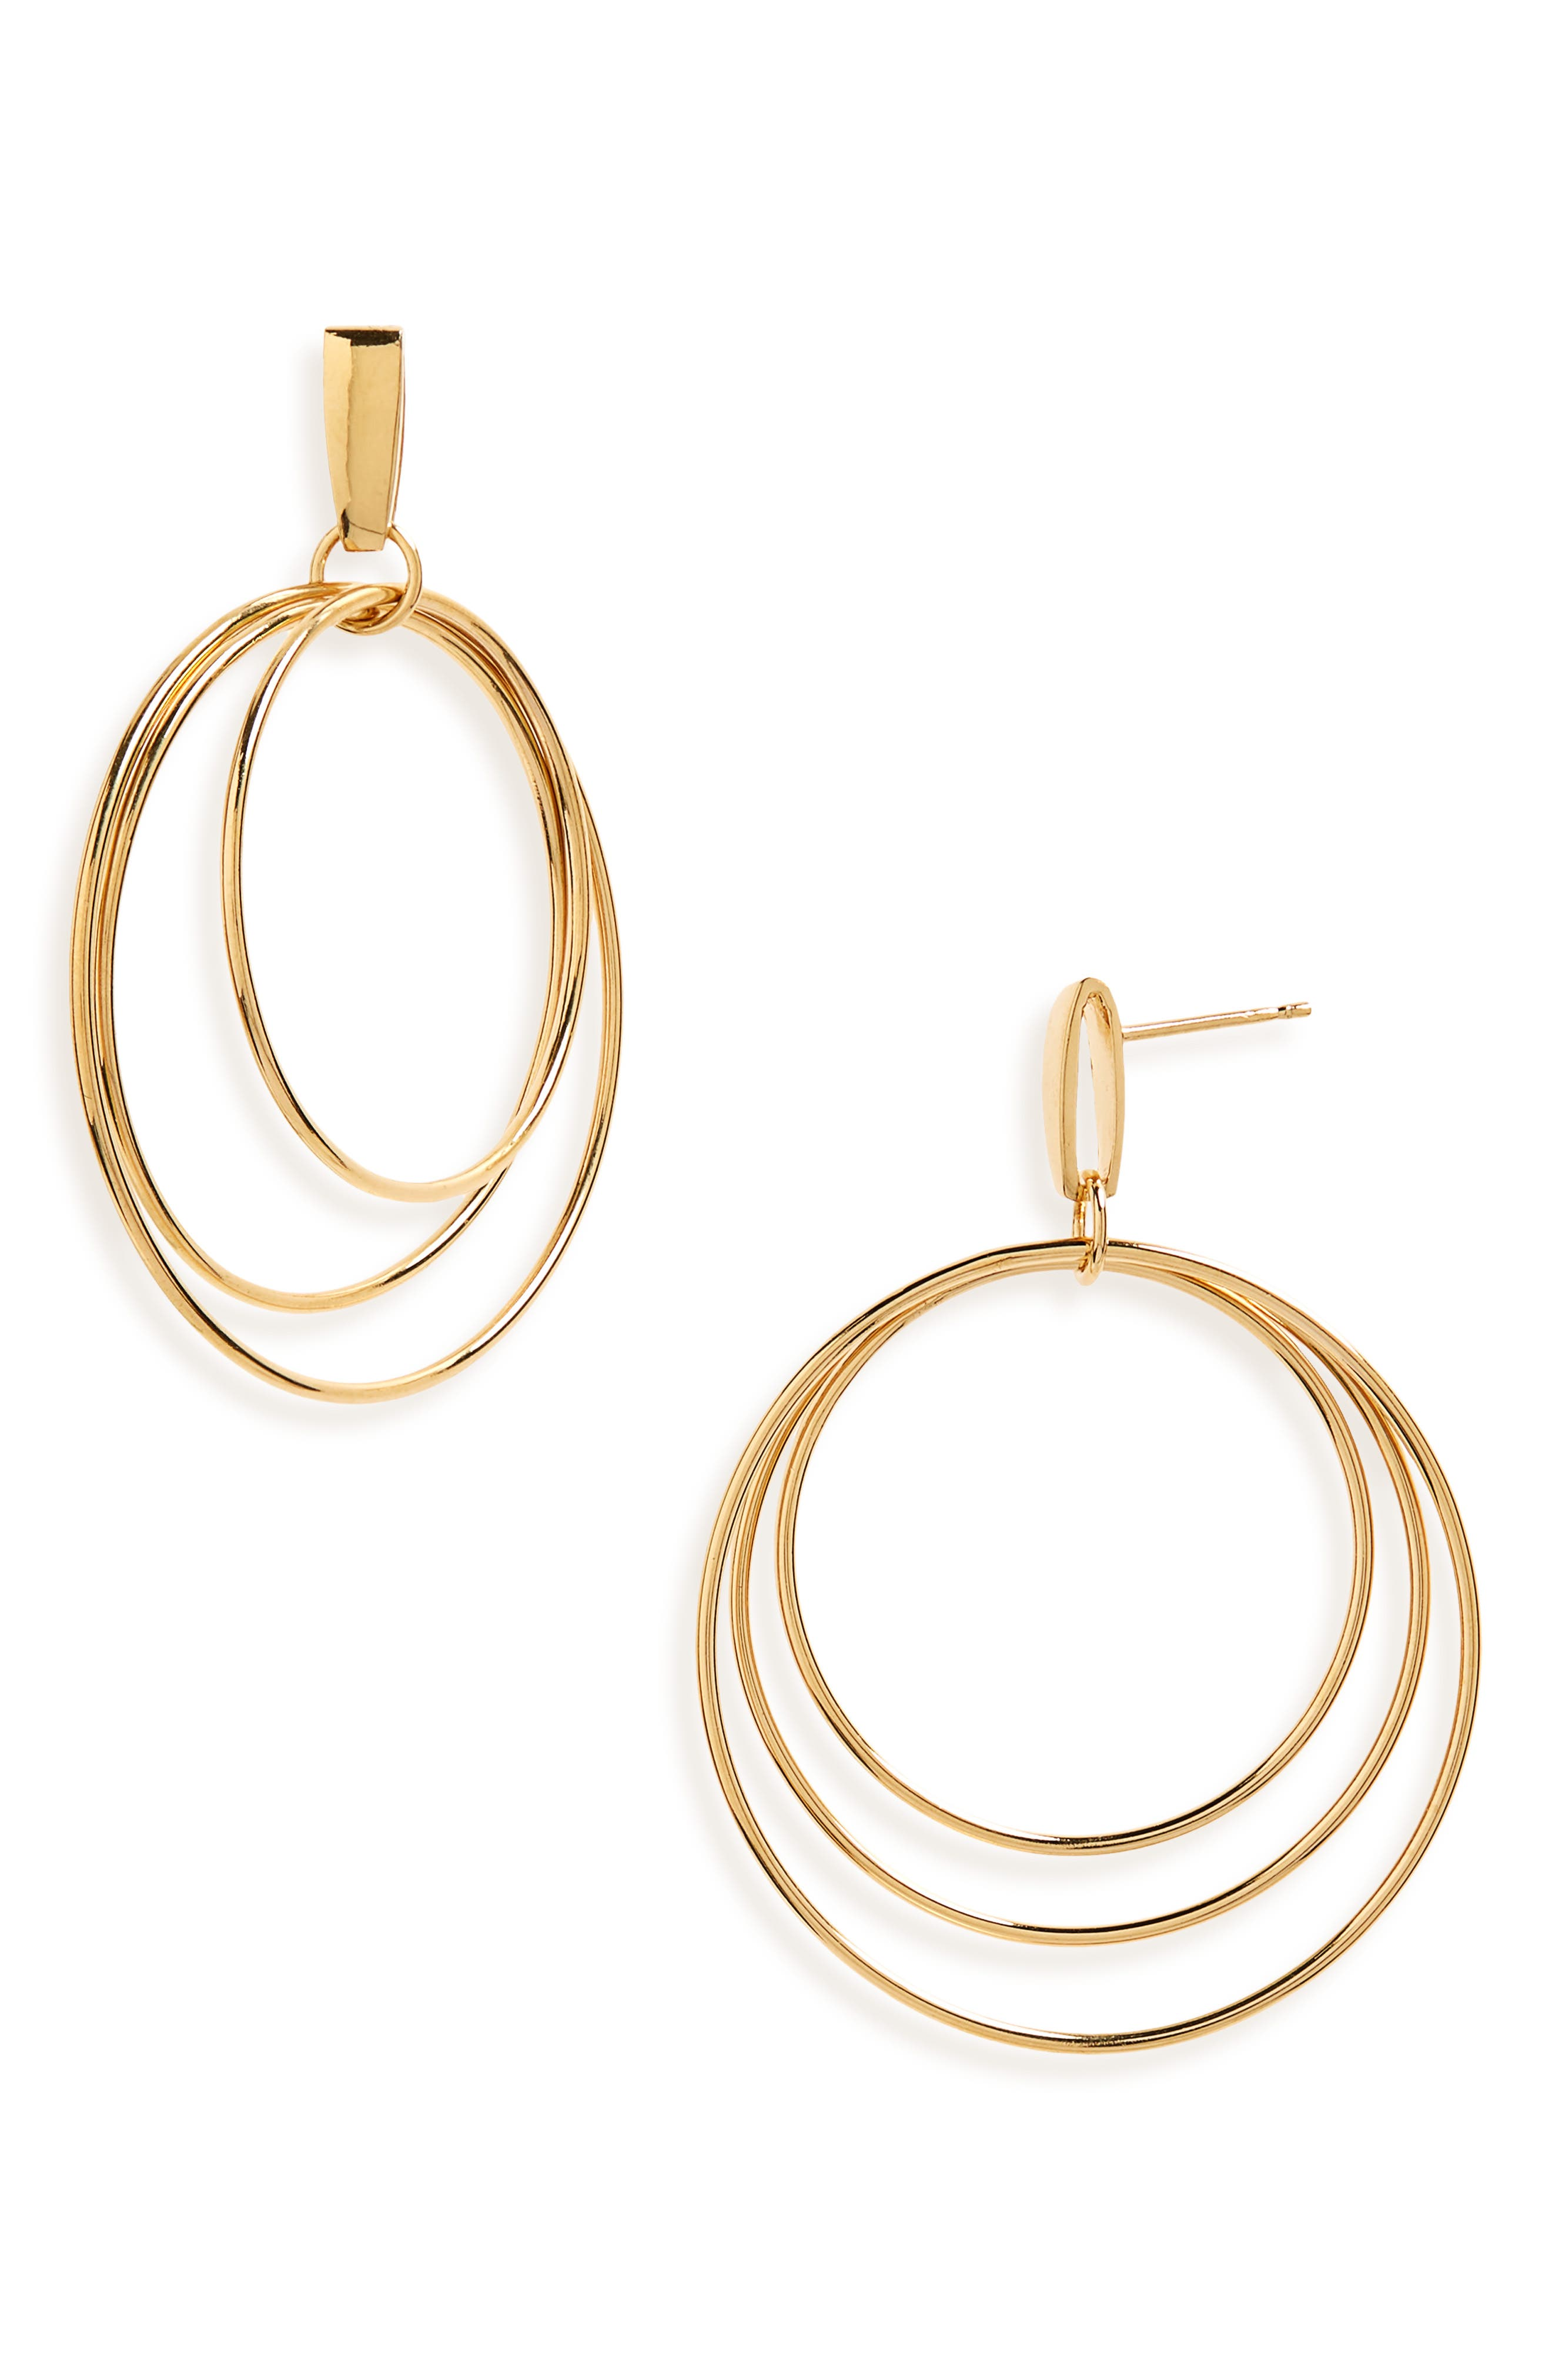 Mini Christy Vermeil Hoop Earrings,                             Main thumbnail 1, color,                             GOLD PLATED STERLING SILVER